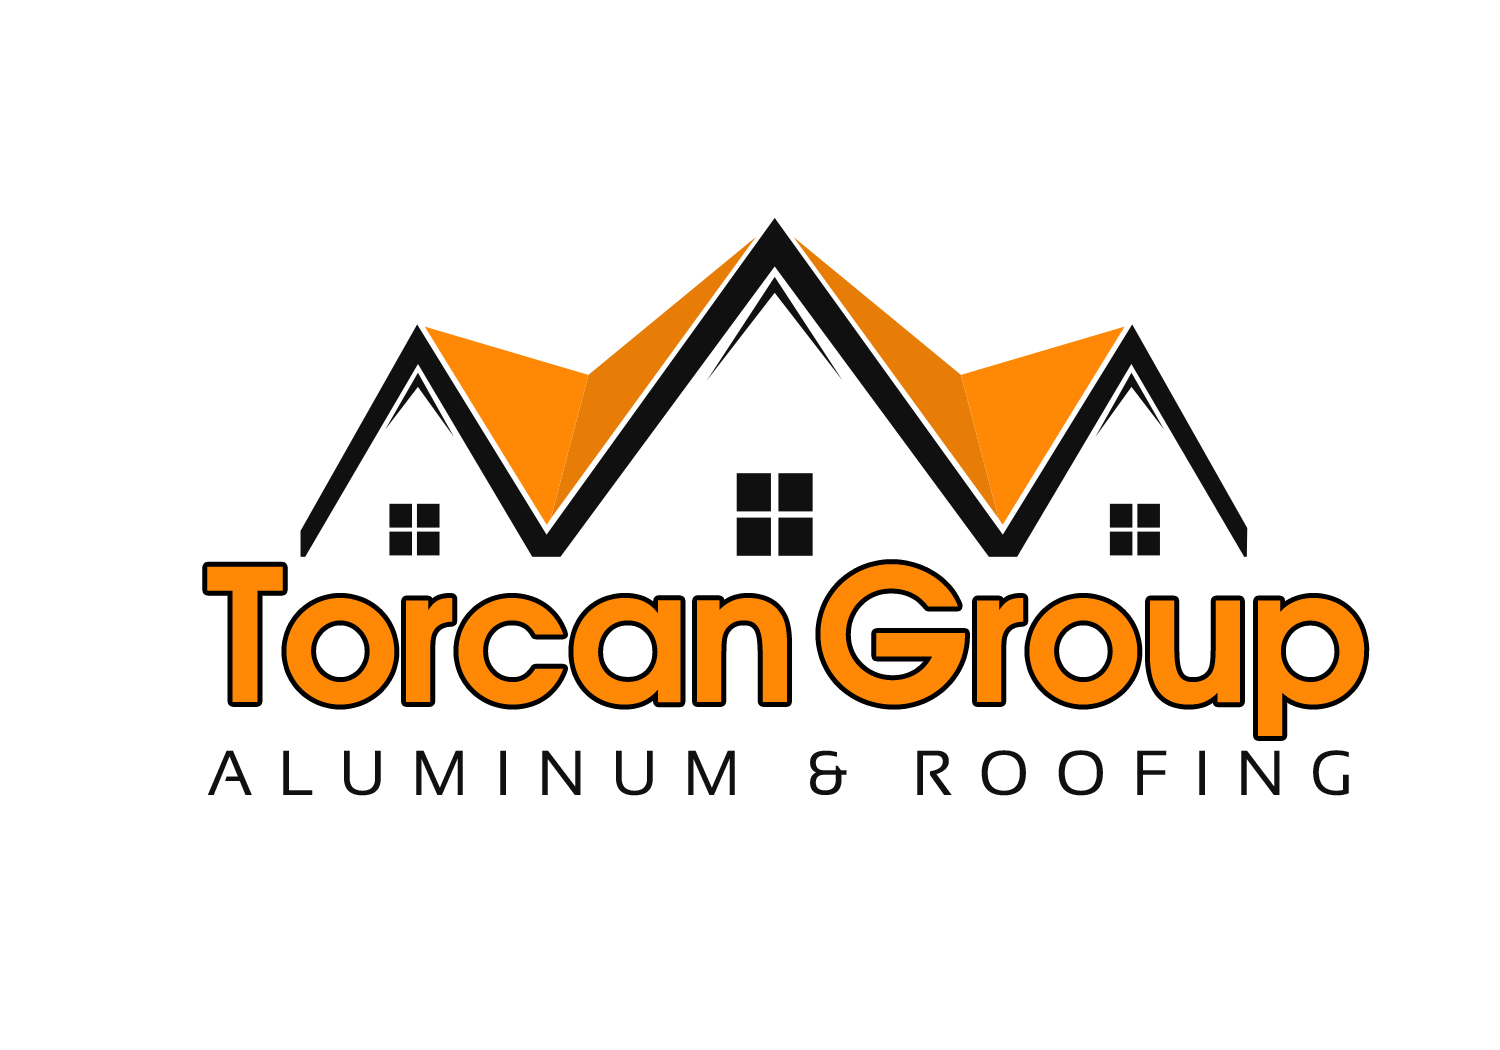 Torcan Group